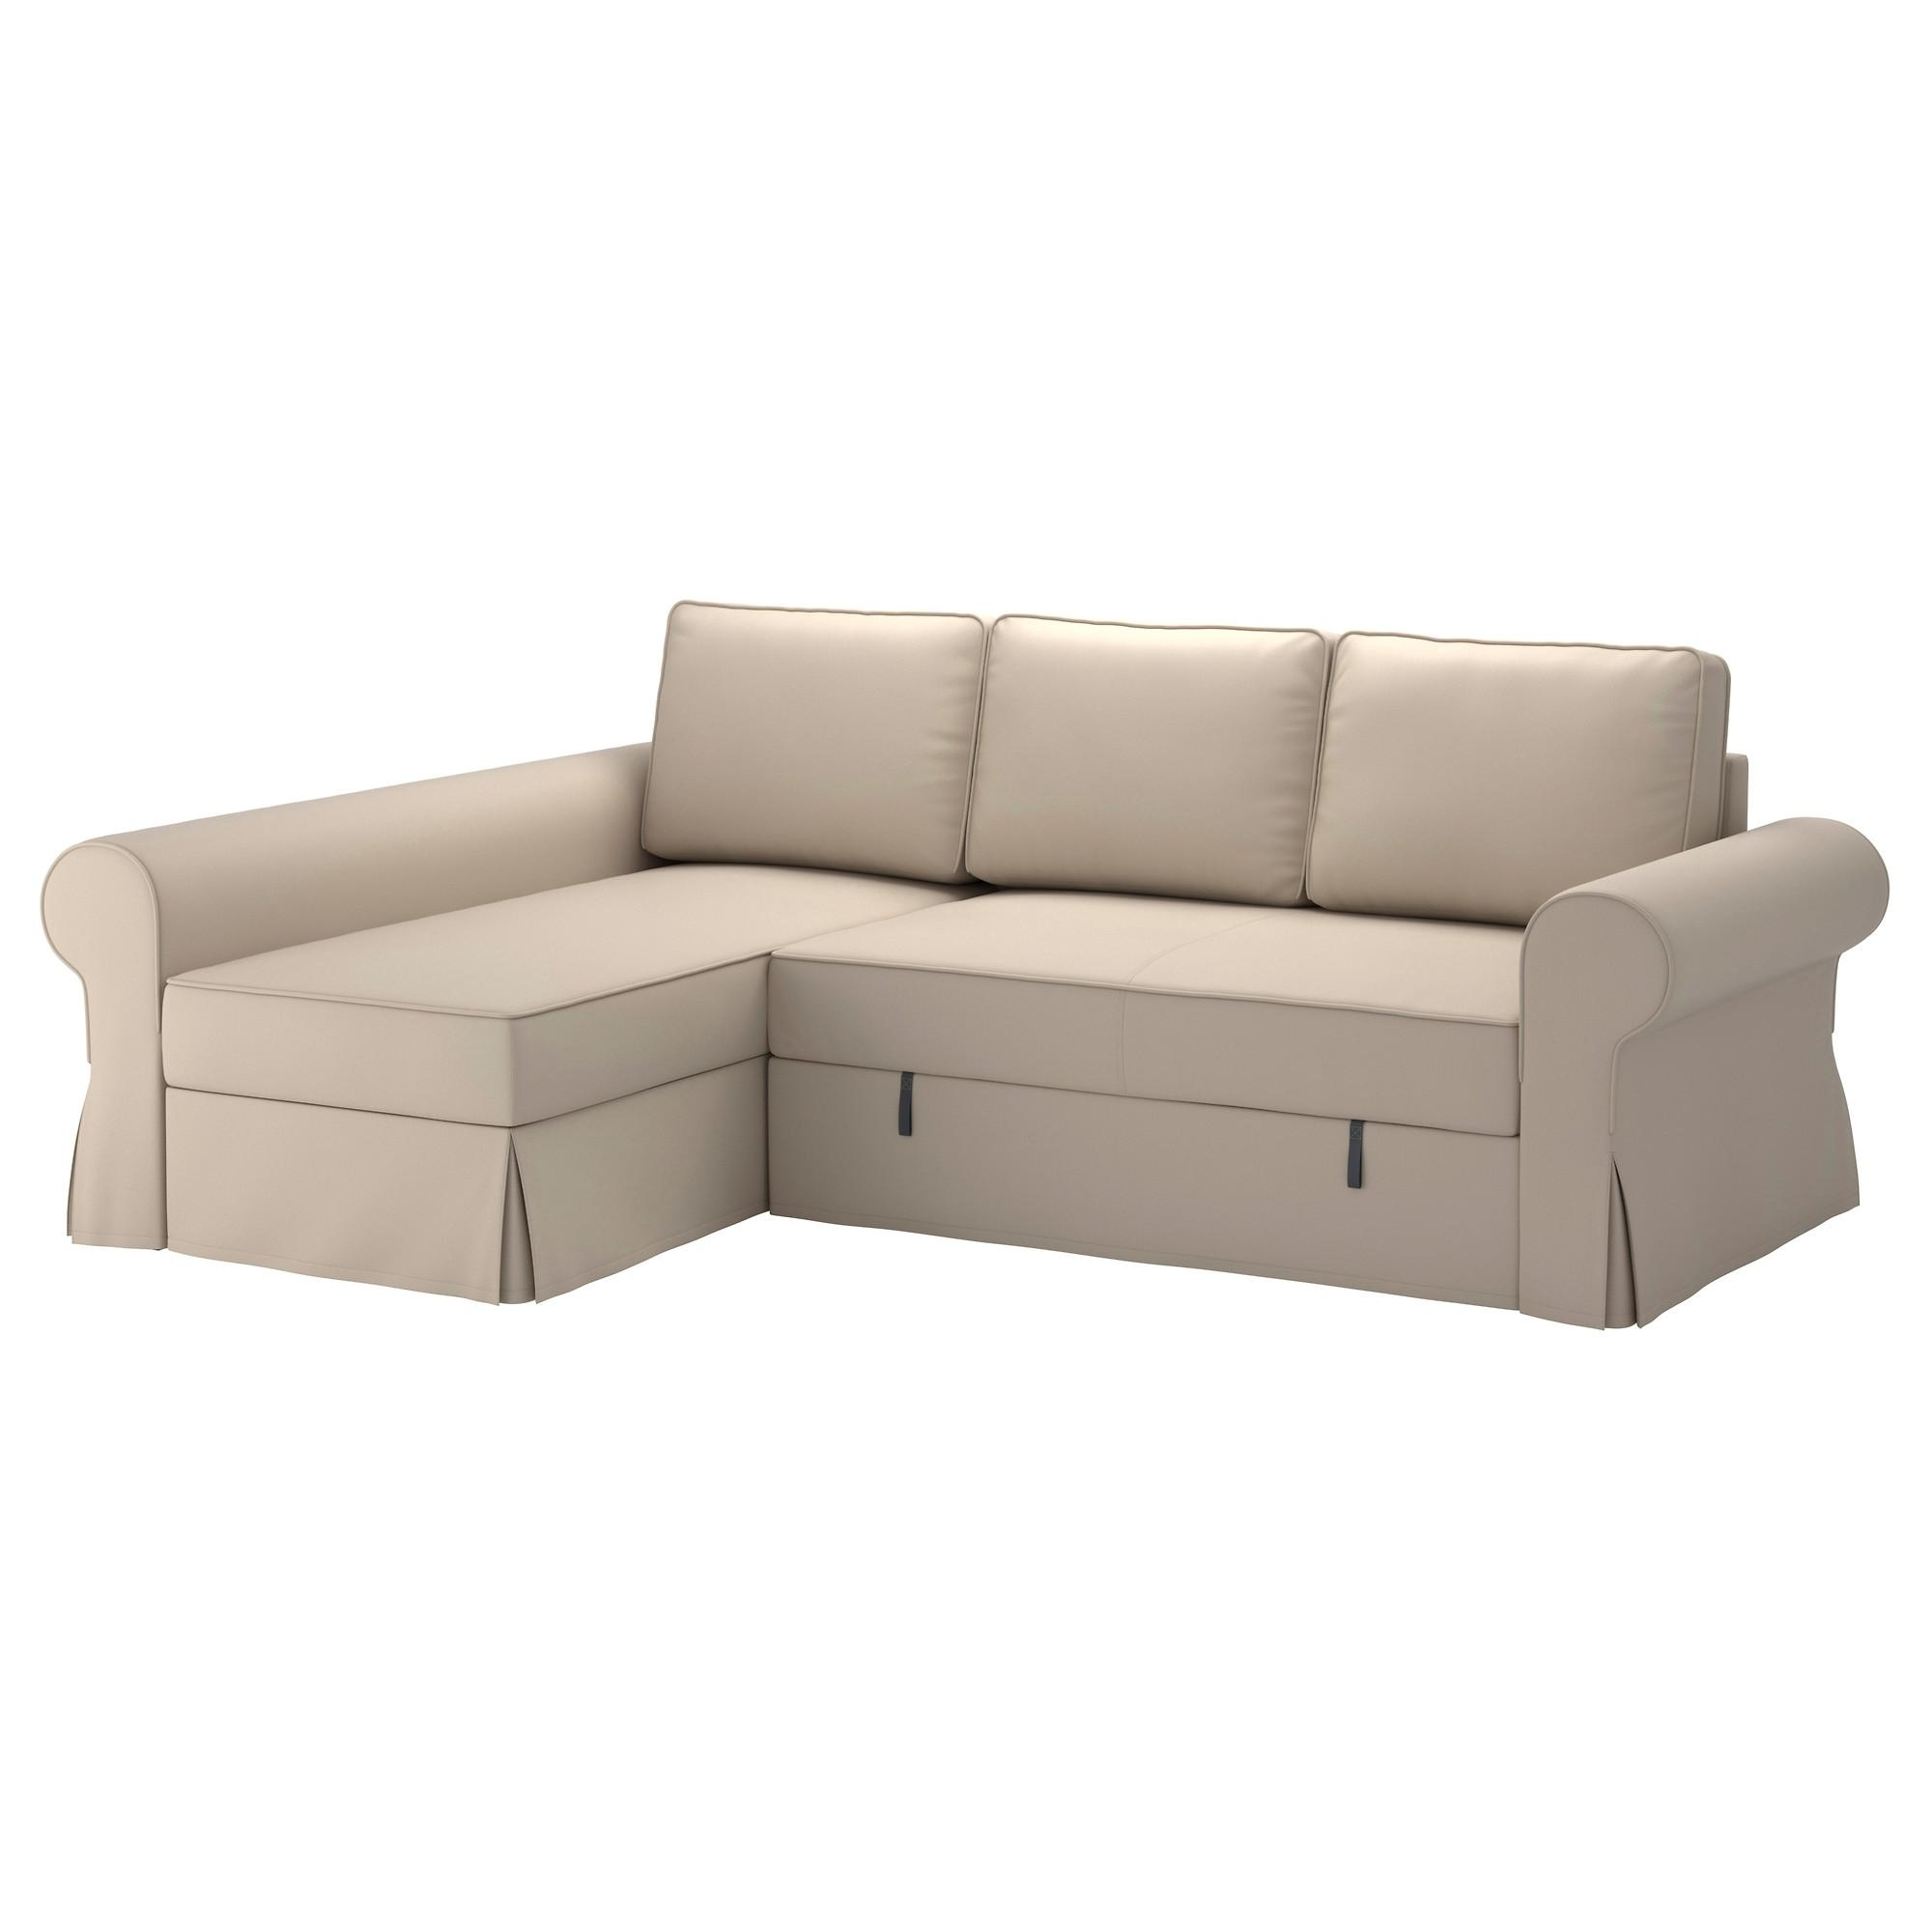 20 photos ikea chaise lounge sofa sofa ideas for Bed chaise longue